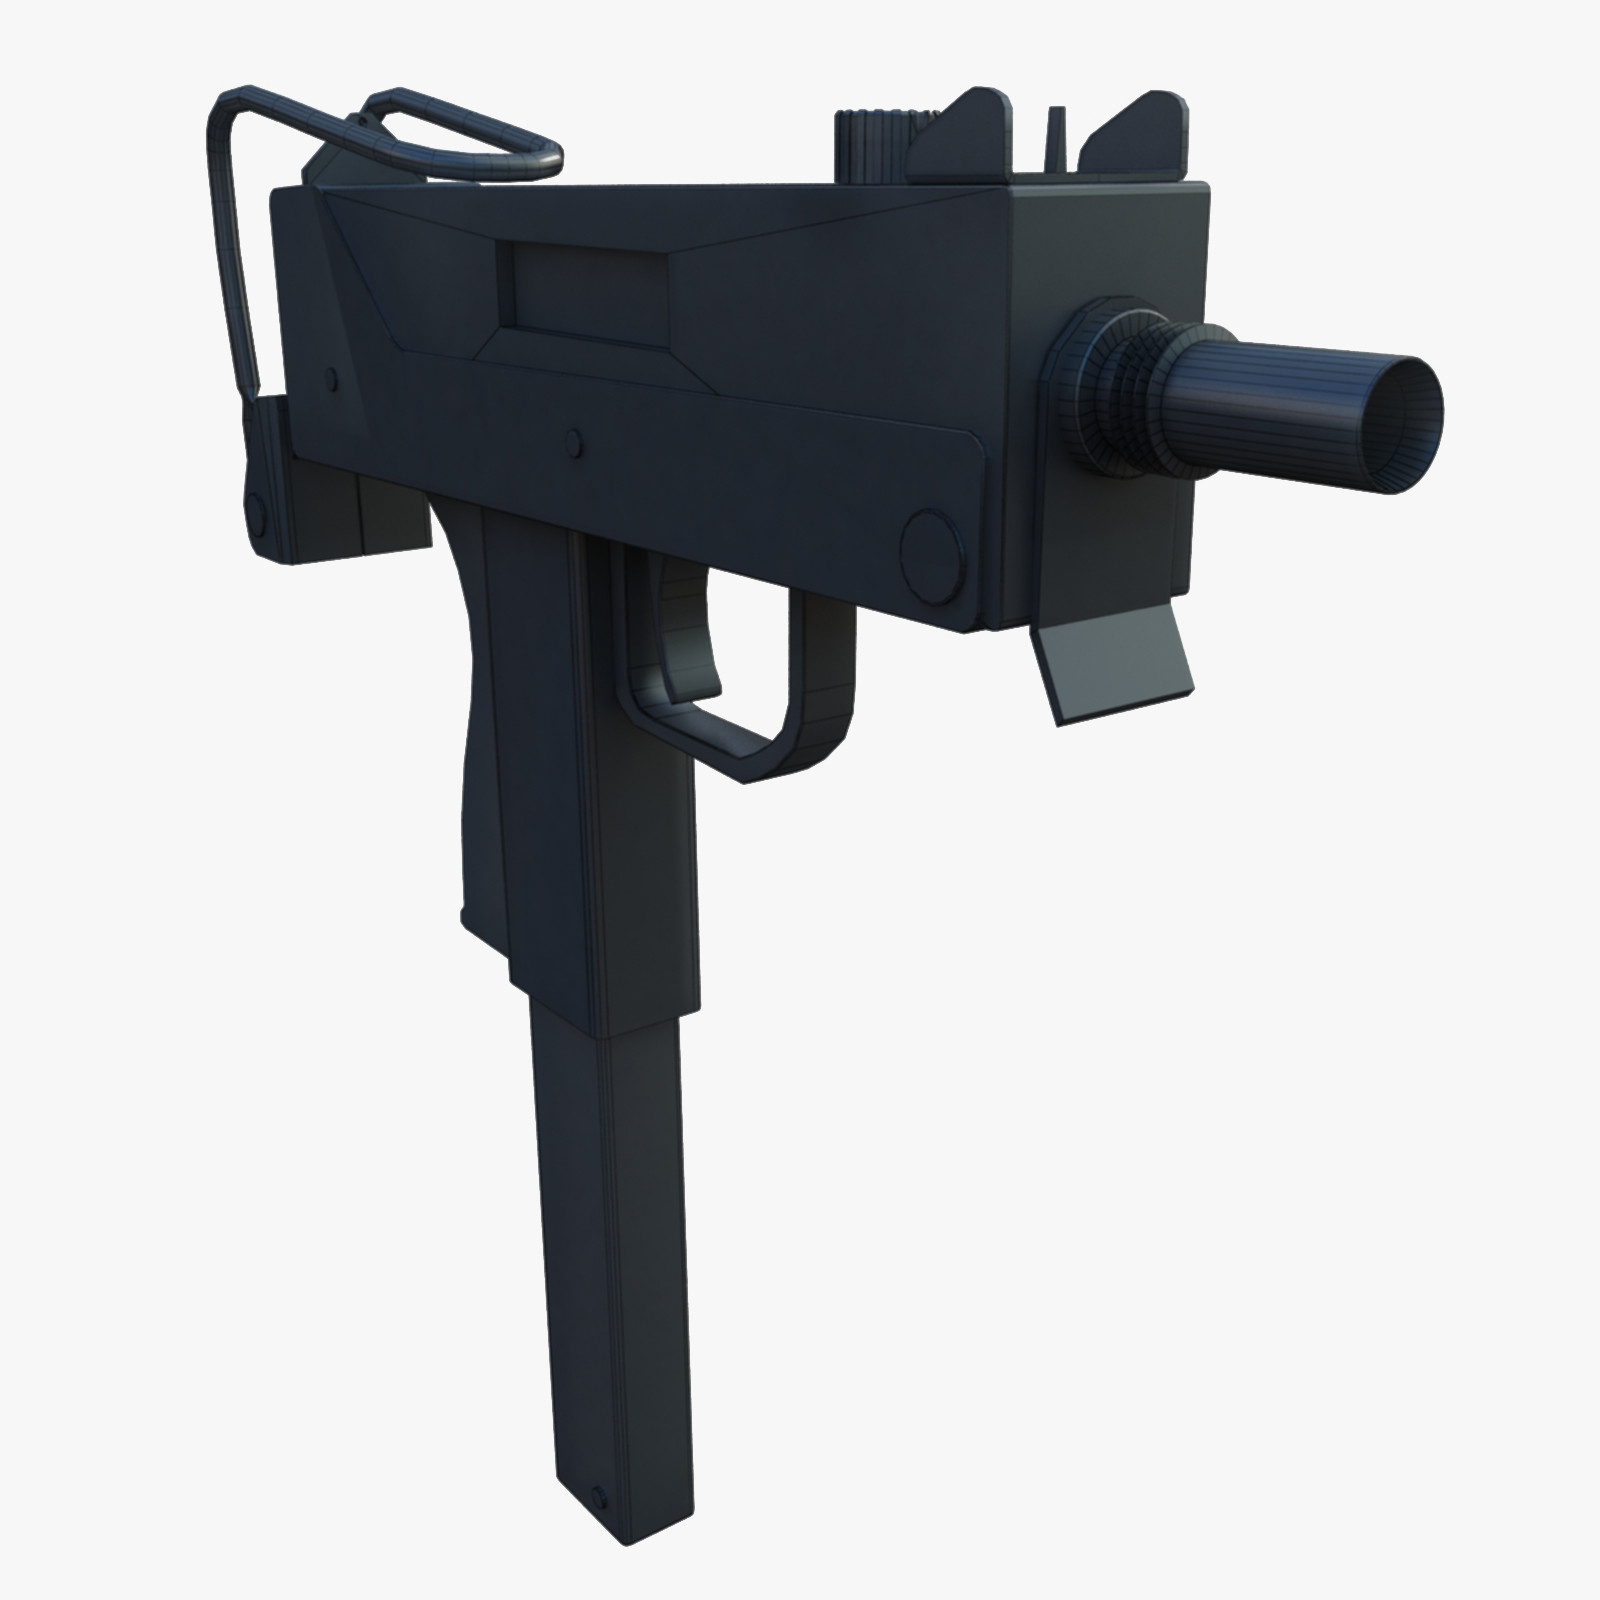 MAC 11 final render IV.jpg